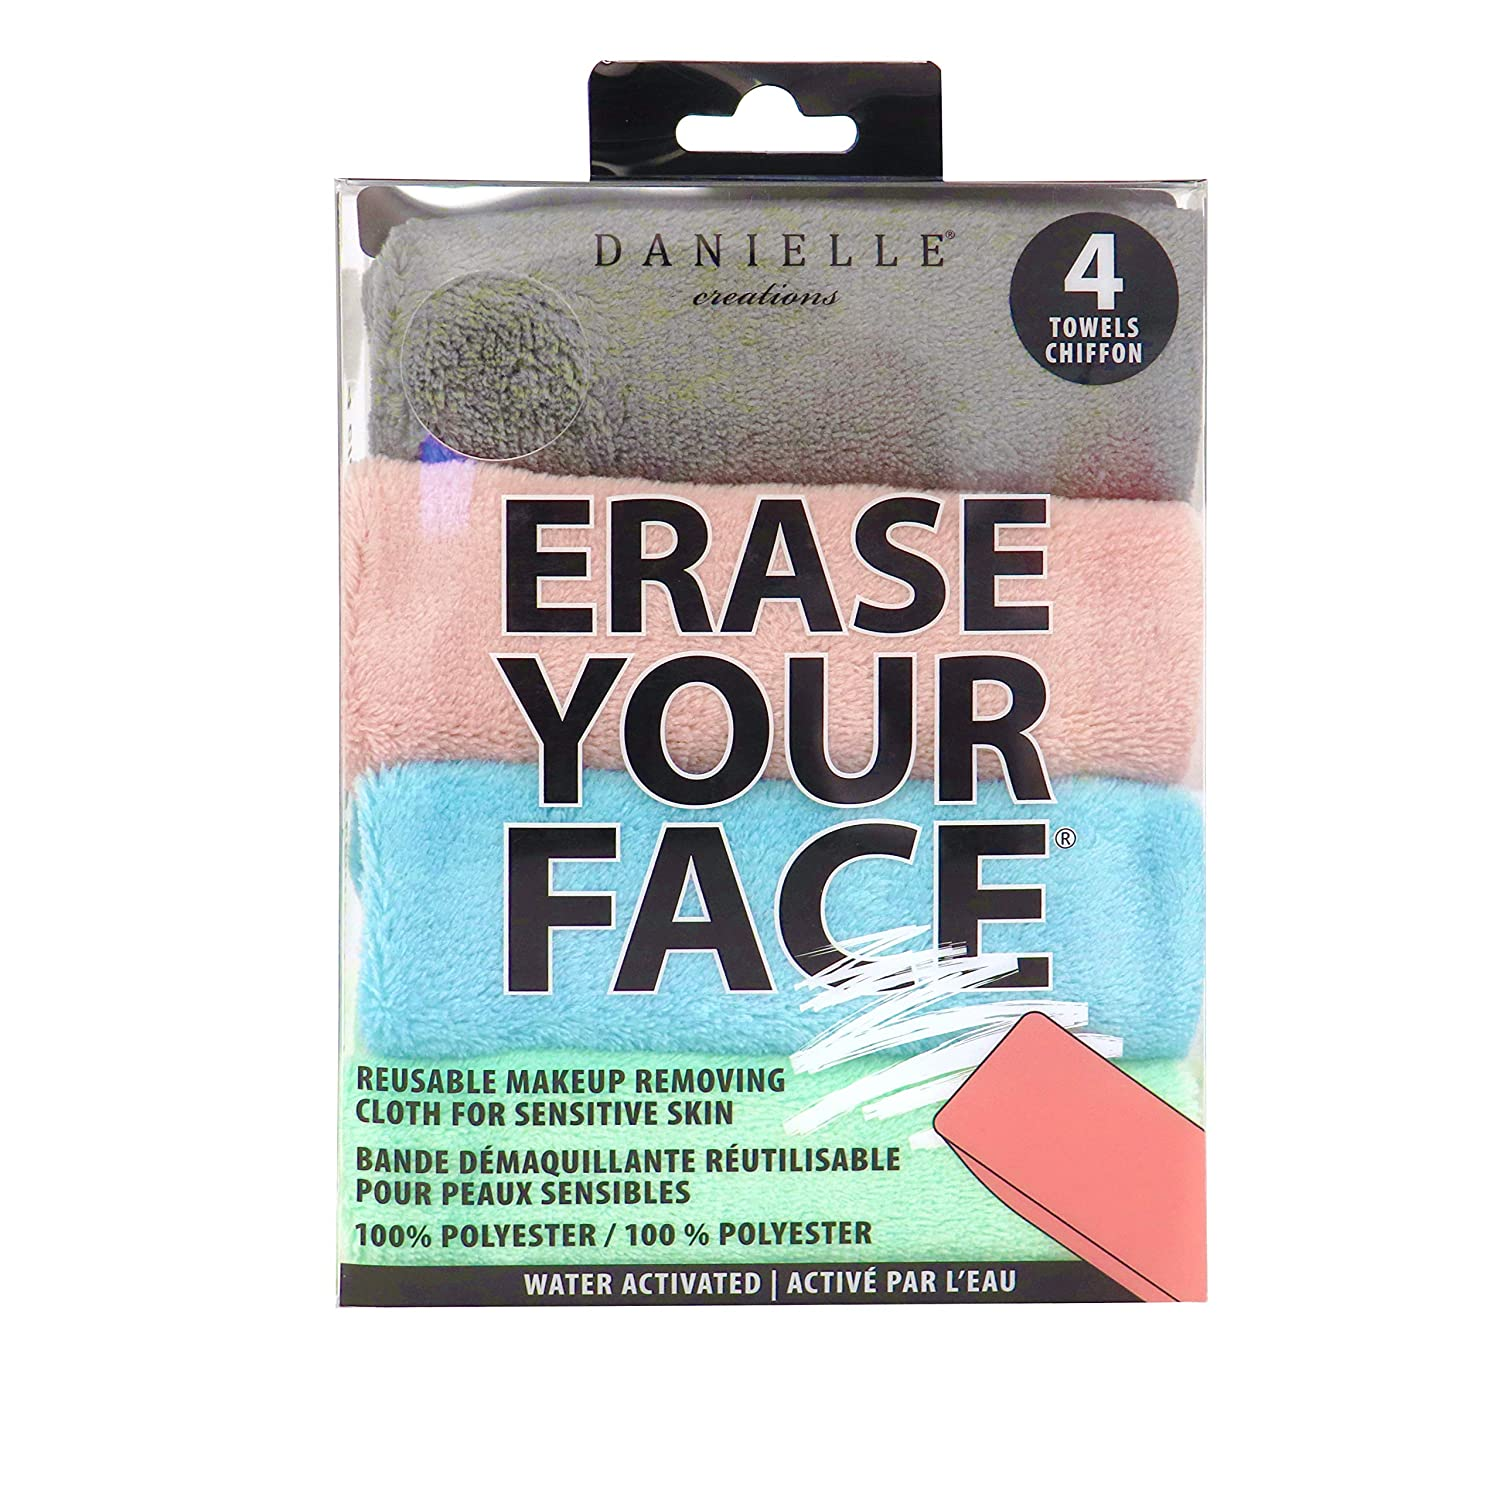 Erase Your Face Makeup Removing Cloth by Danielle in Pastel - 4 Pack